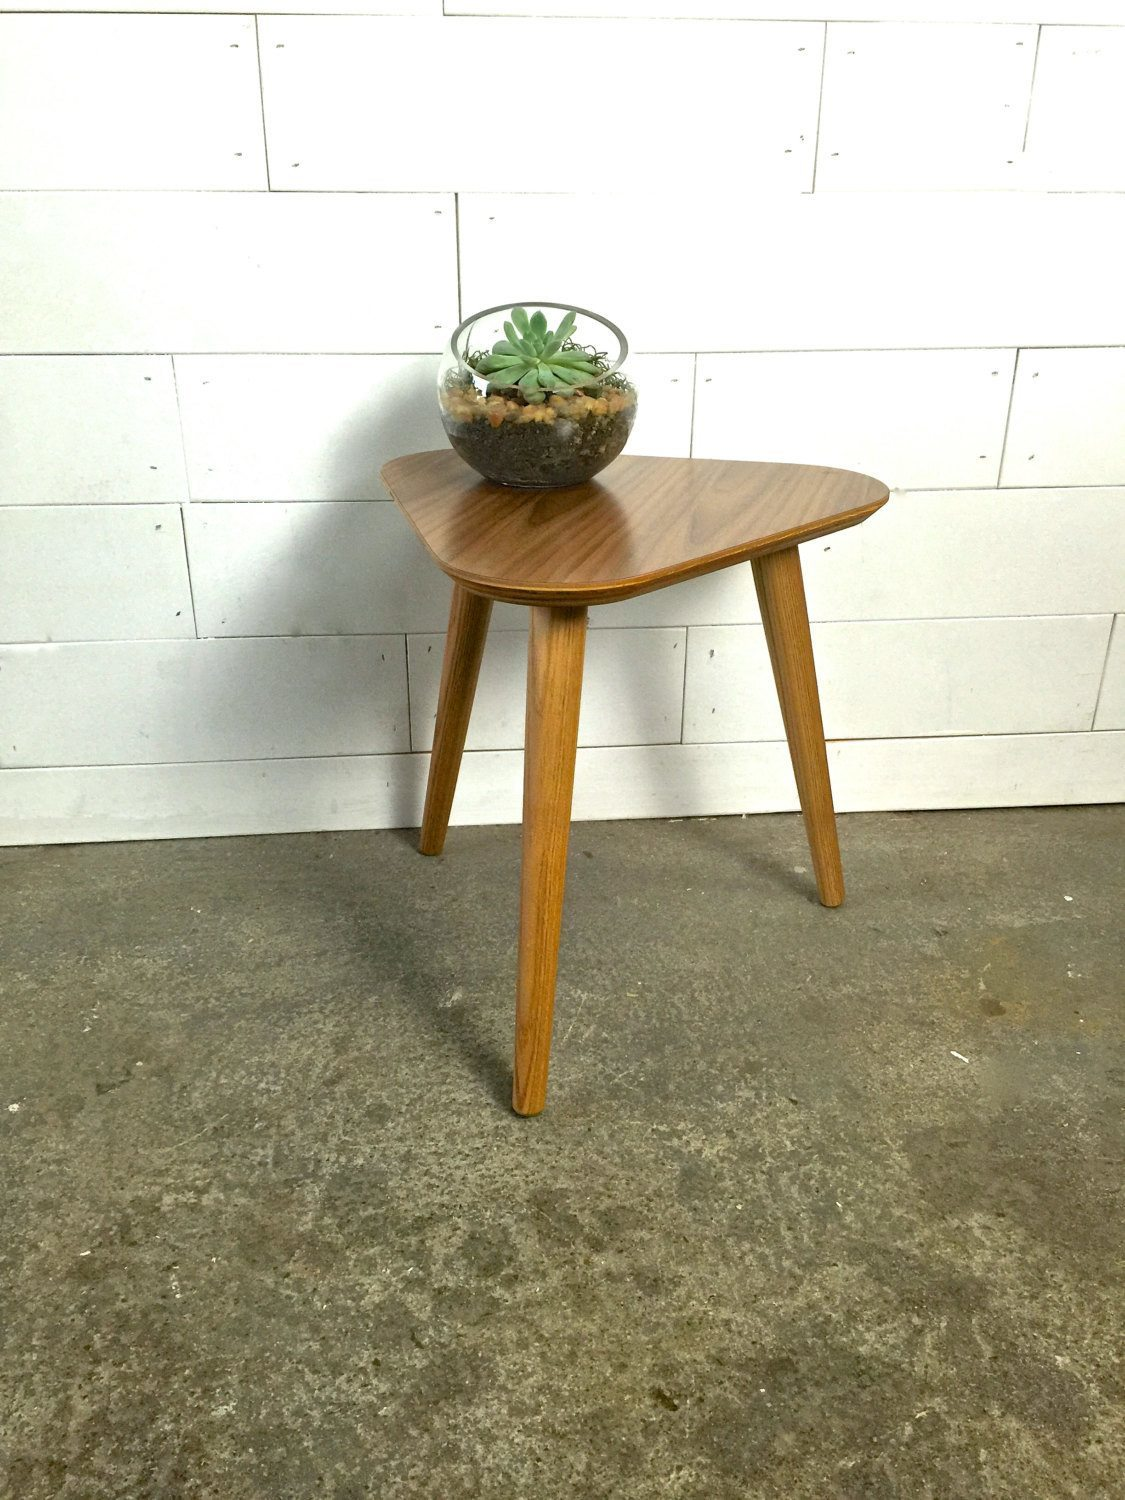 Valencia Triangle Stand - JeremiahCollection - 1